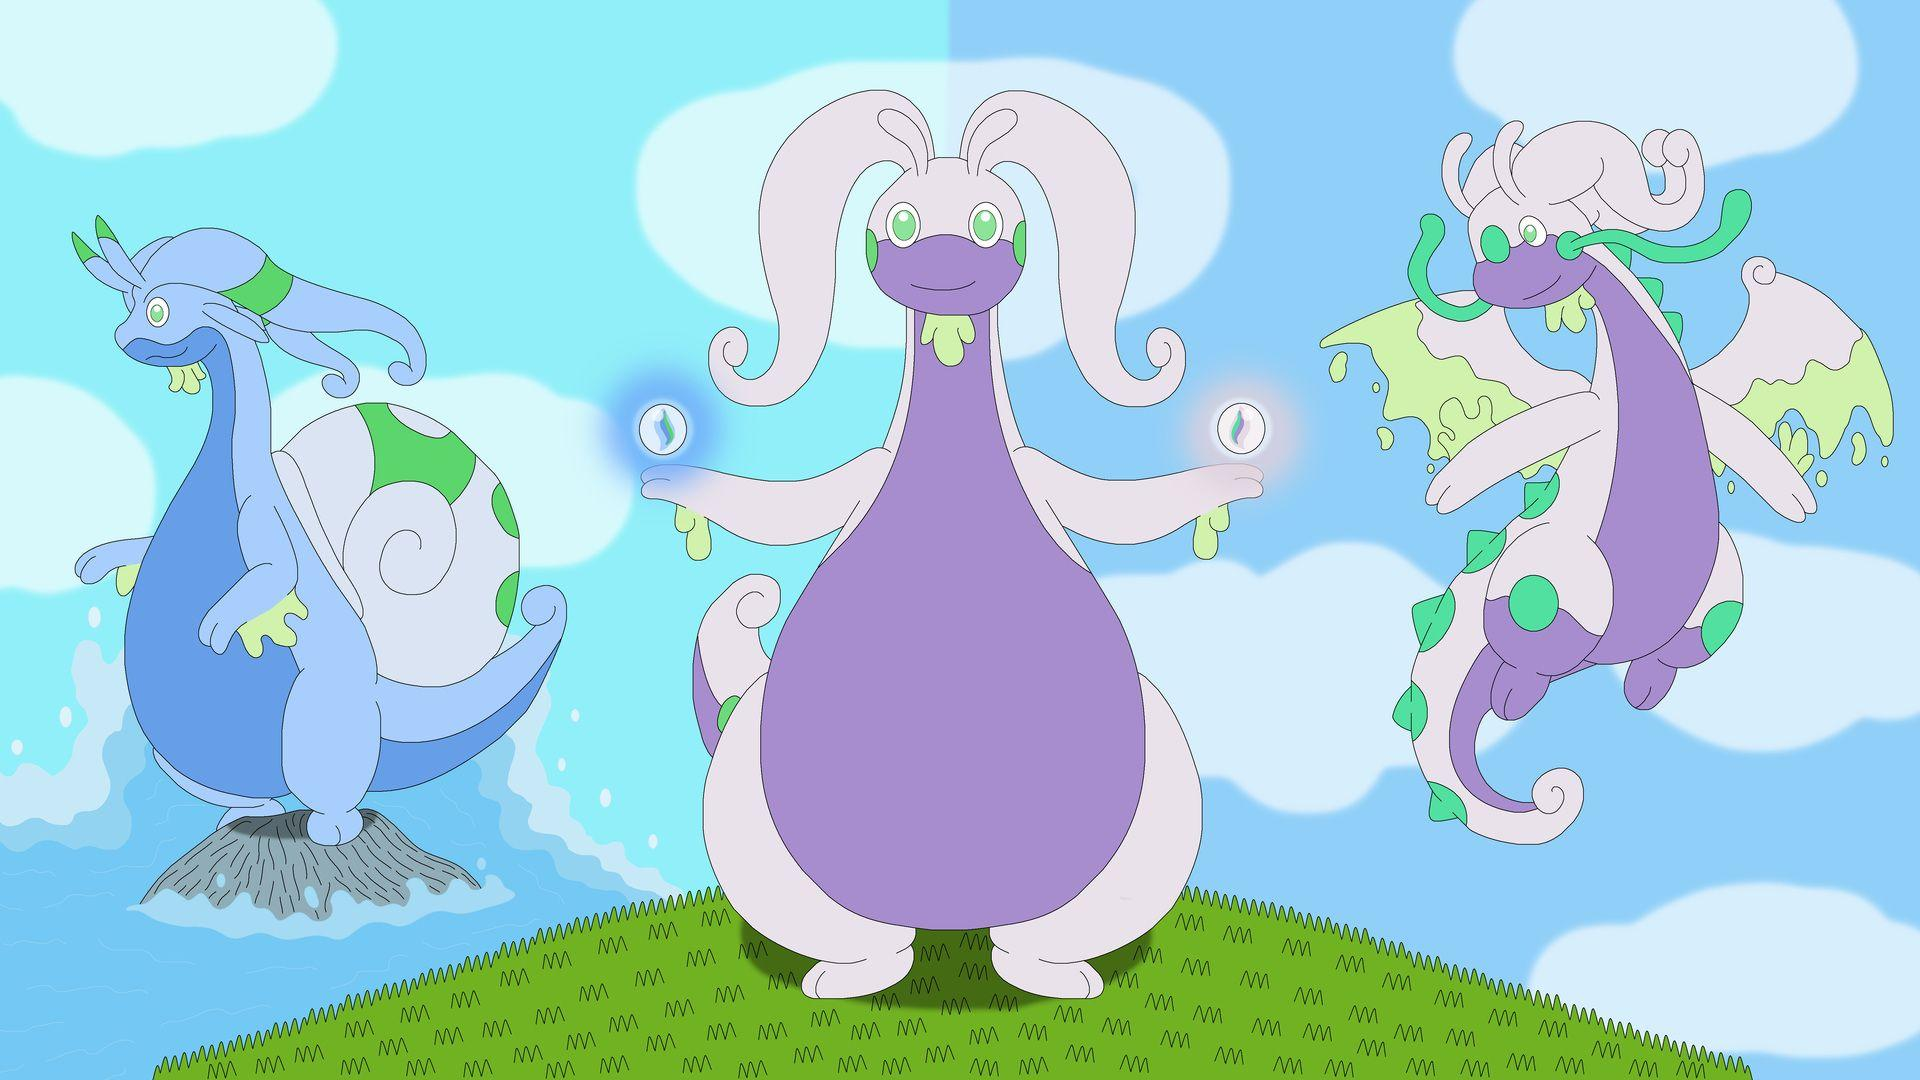 1920x1080 goodra, pokemon desktop wallpaper 40375